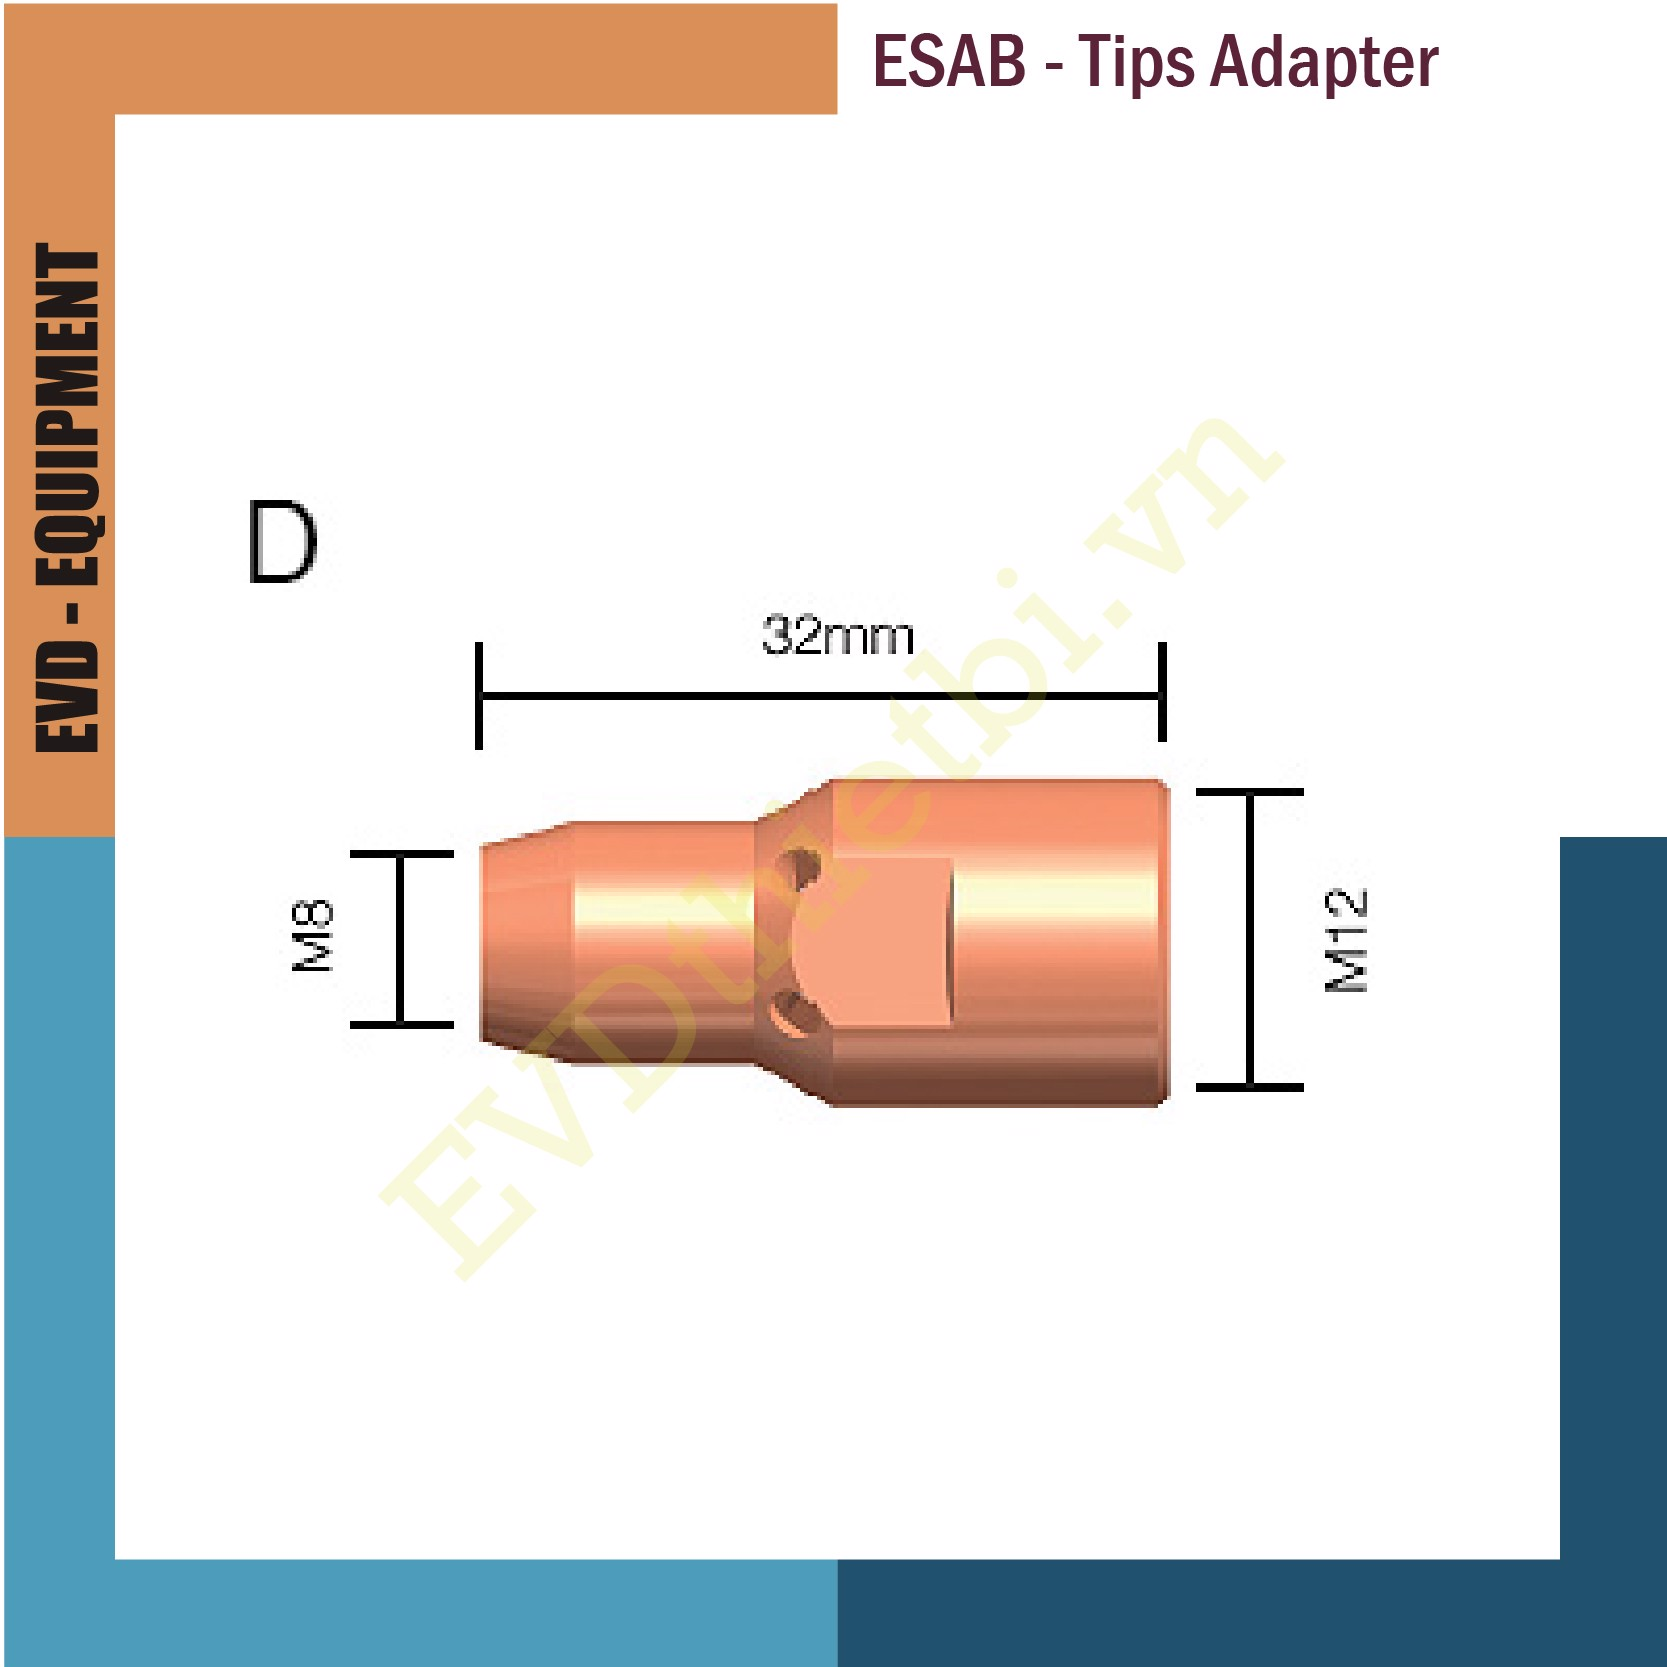 ESAB TIPS ADAPTERS